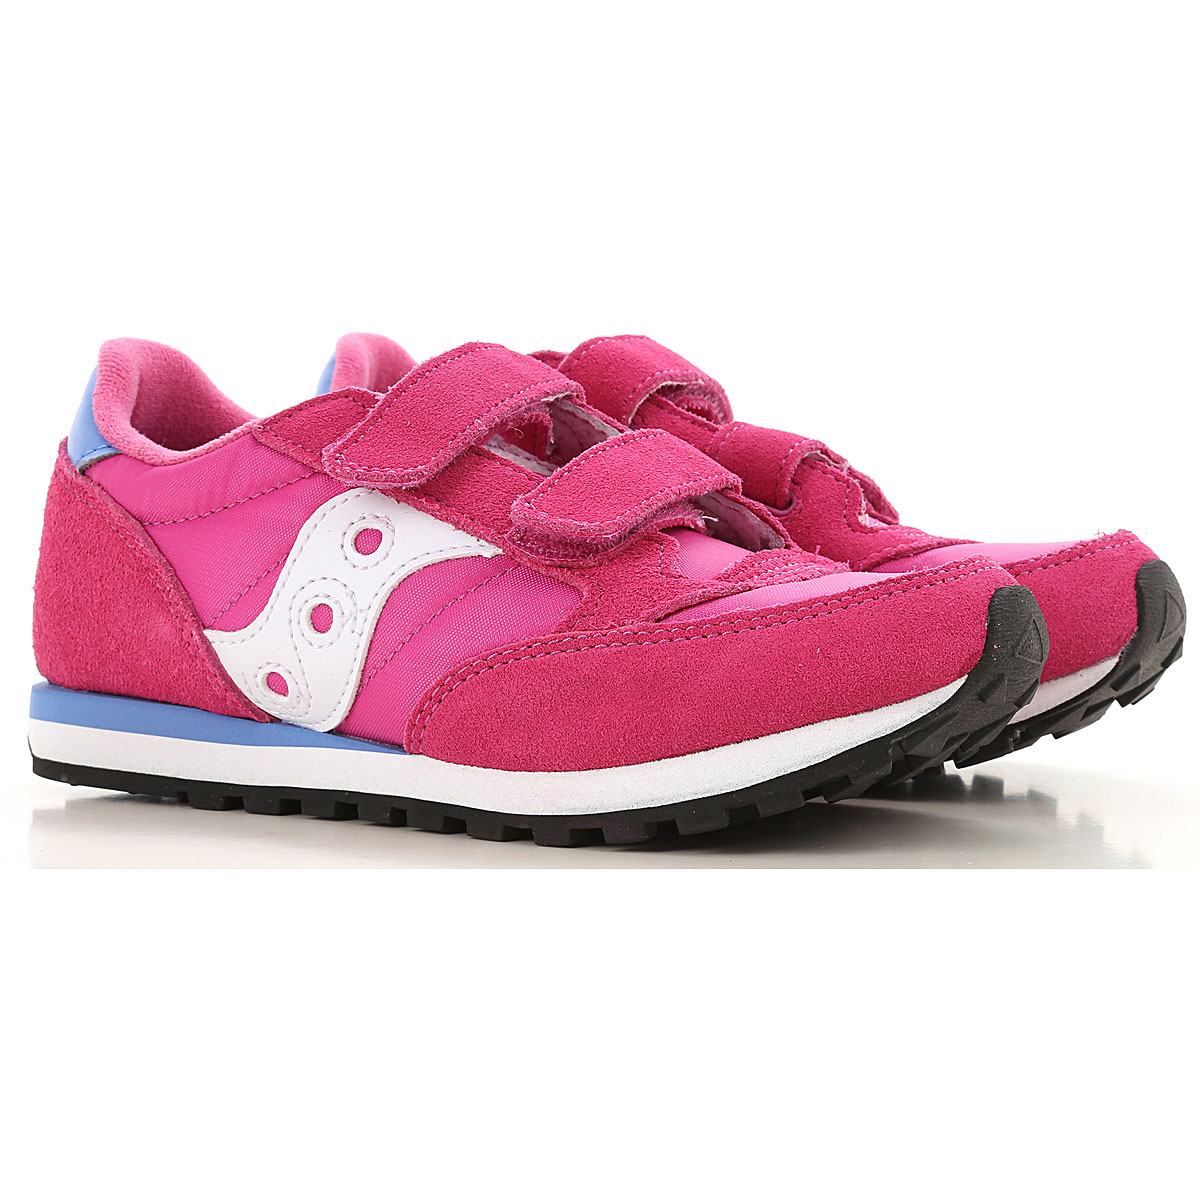 Image of Saucony Kids Shoes for Girls, Fuchsia, Fabric, 2017, Toddler 10.5 - Ita 27 Toddler 12 - Ita 29 Toddler 13 - Ita 31 UK 12 - EUR 30 UK 13.5 - EUR 32 Child 1.5 - Ita 33 Child 2 - Ita 33.5 Child 2.5 - Ita 34 Child 3 - Ita 35